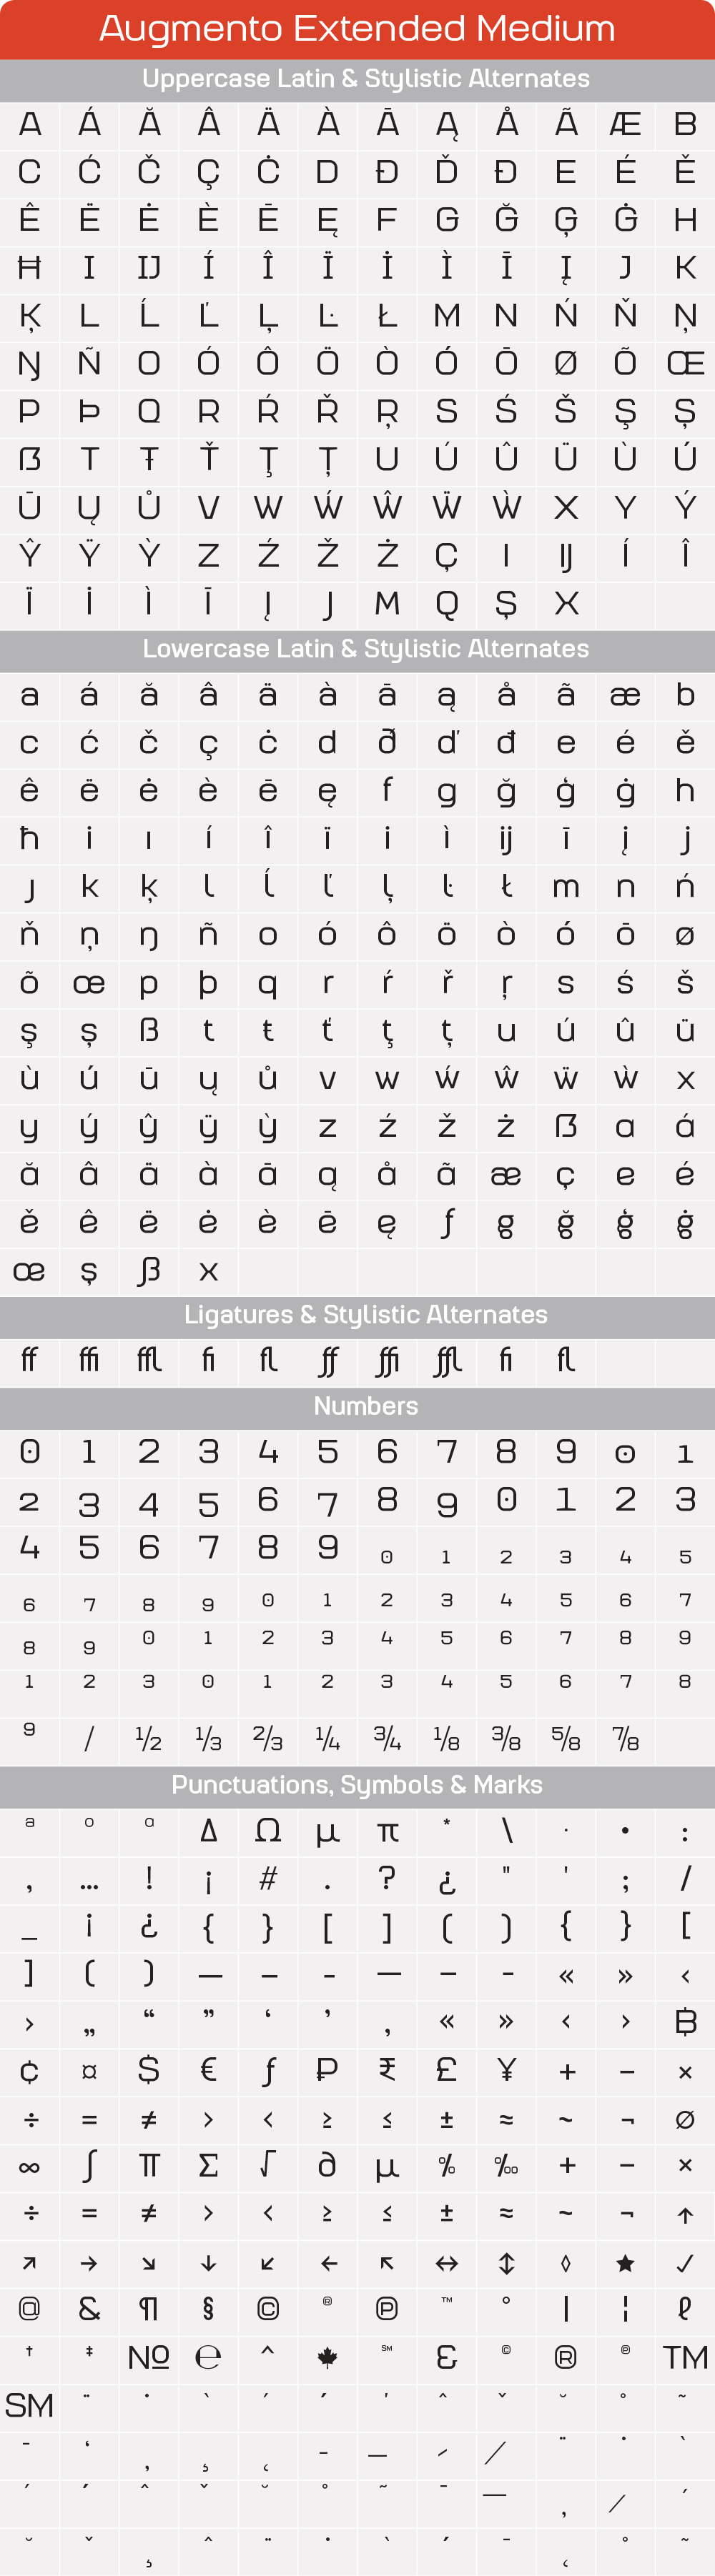 Extended MediumAugmento-GlyphTable.png